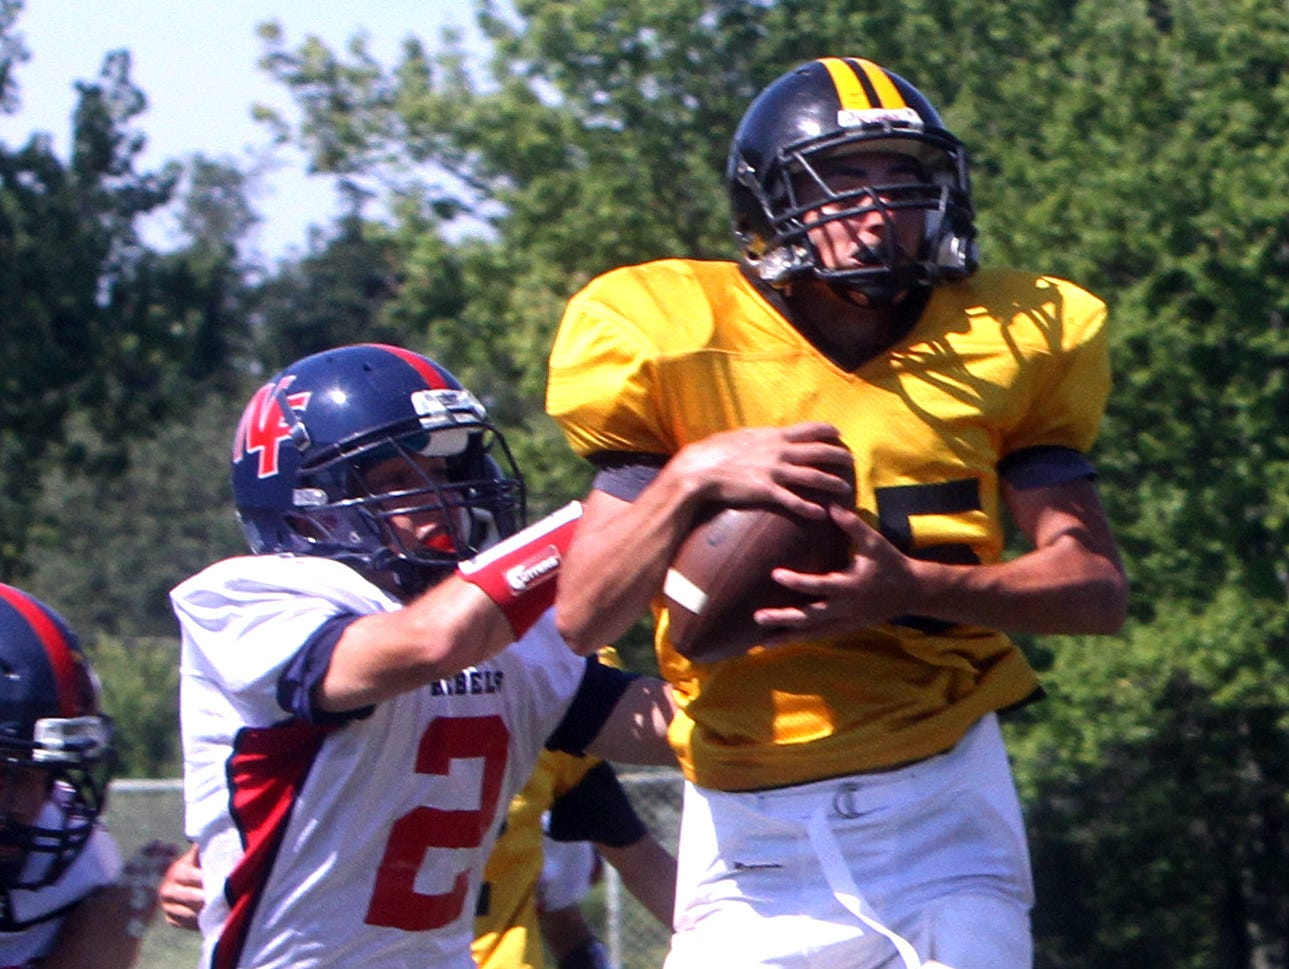 Nanuet's Mike Zaro catches a touchdown pass over a New Fairfield. Conn., defender during a multi-teamscrimmage at Brewster High School Saturday.